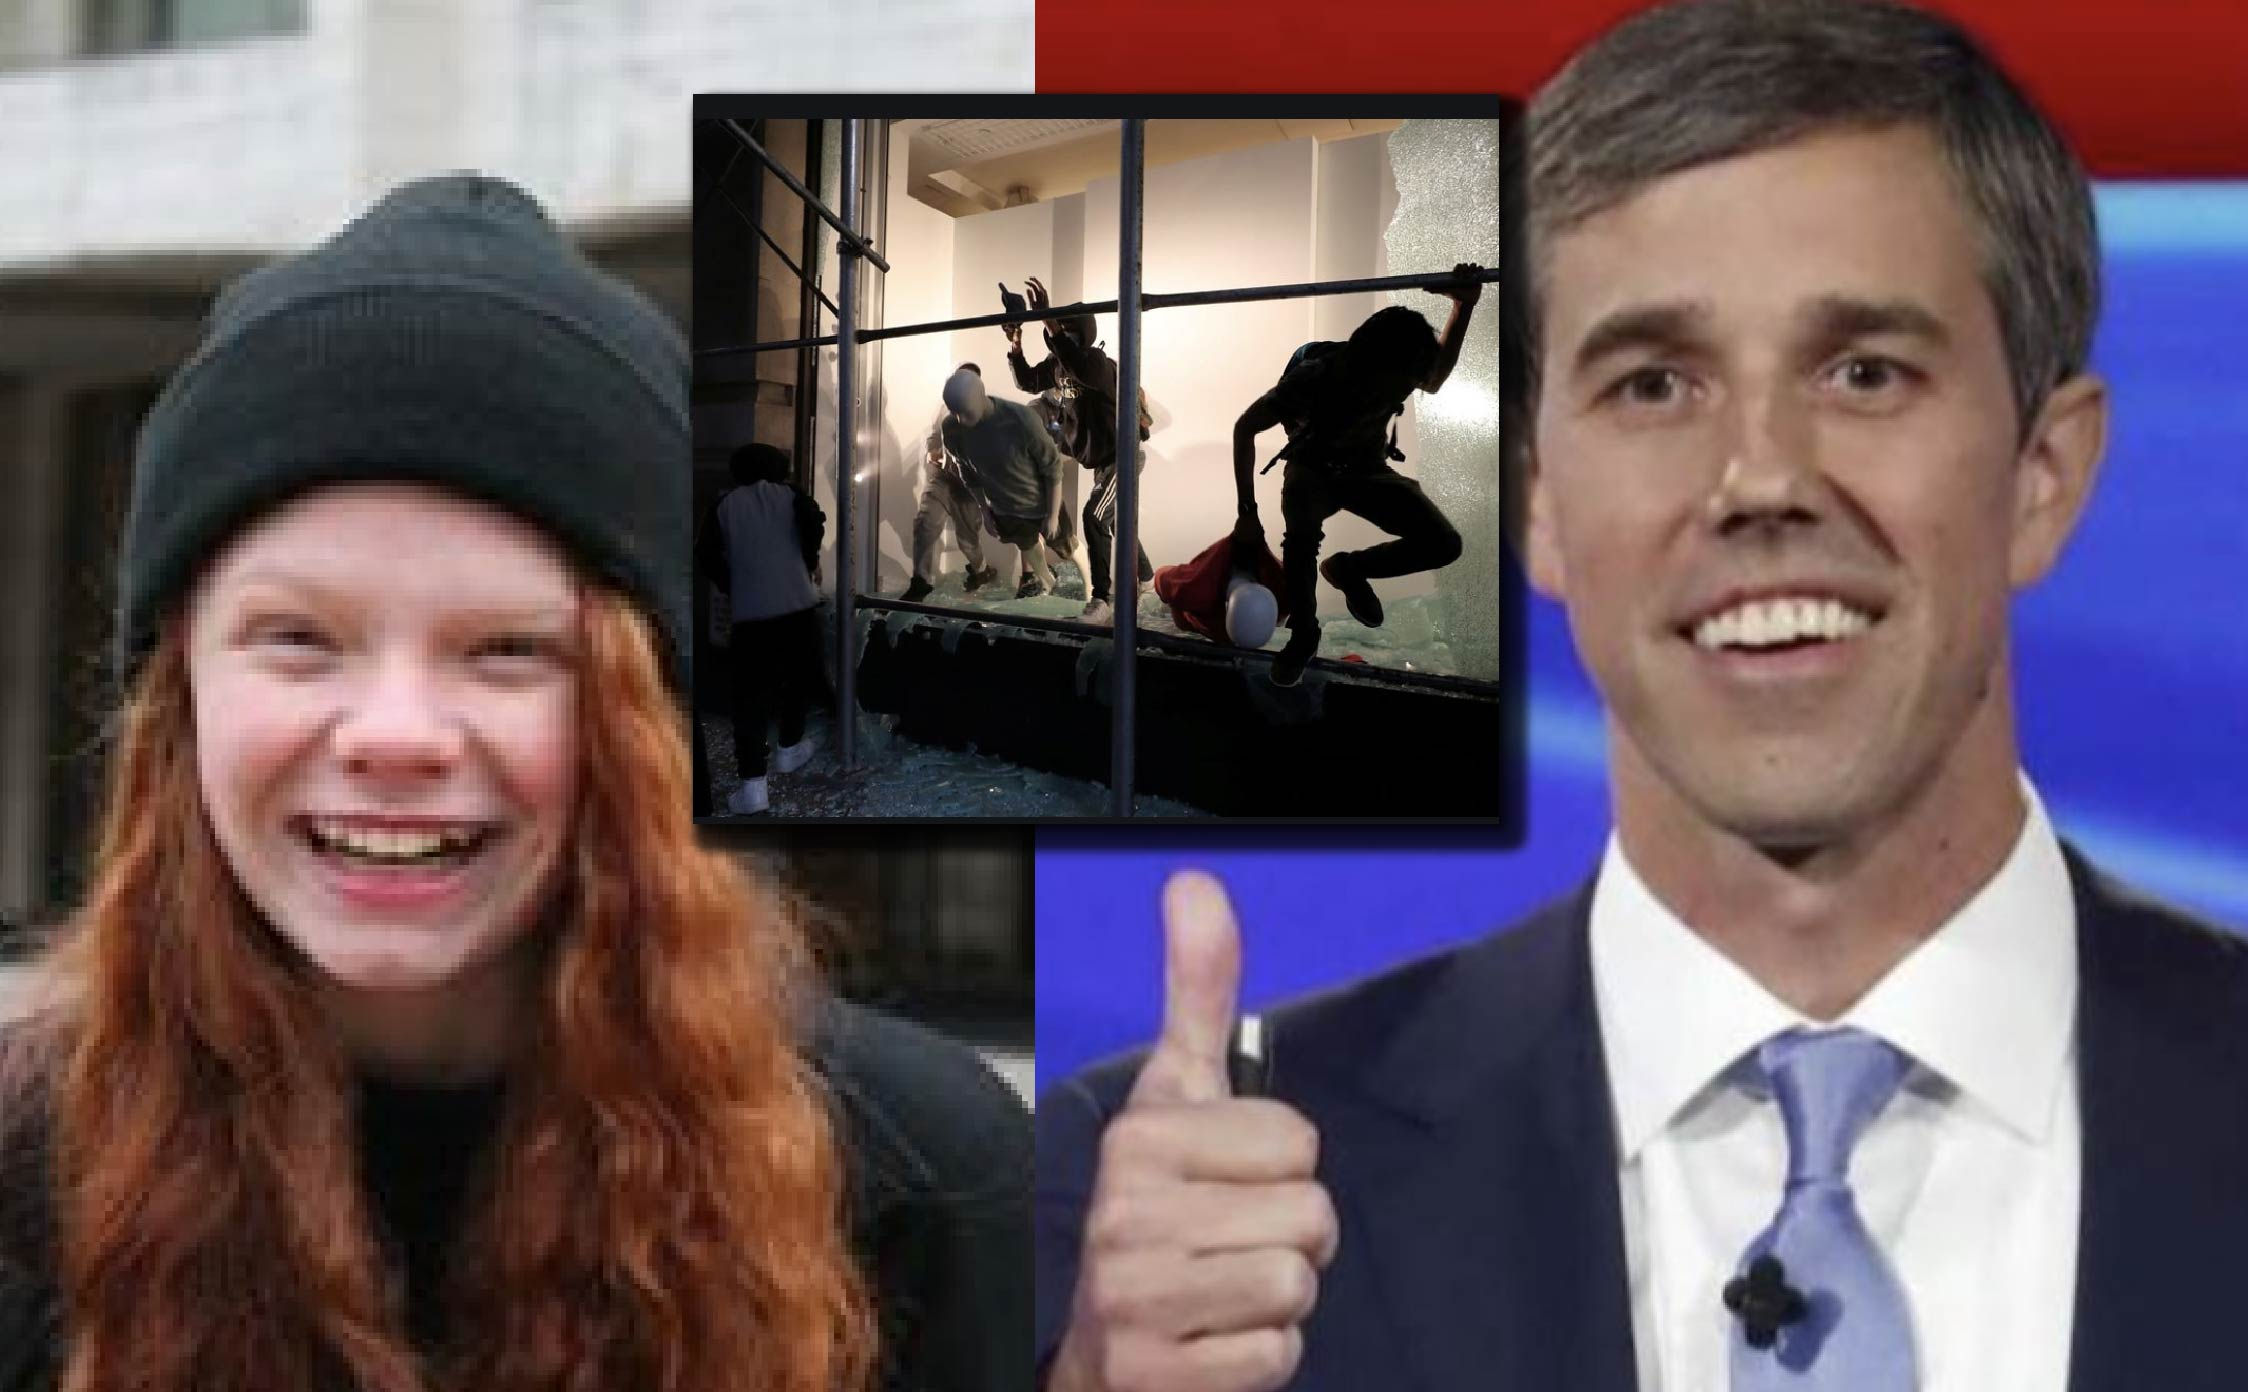 20-Year-Old Beto O'Rourke Campaign Worker and BLM Supporter Arrested and Faces Major Prison Time For Rioting